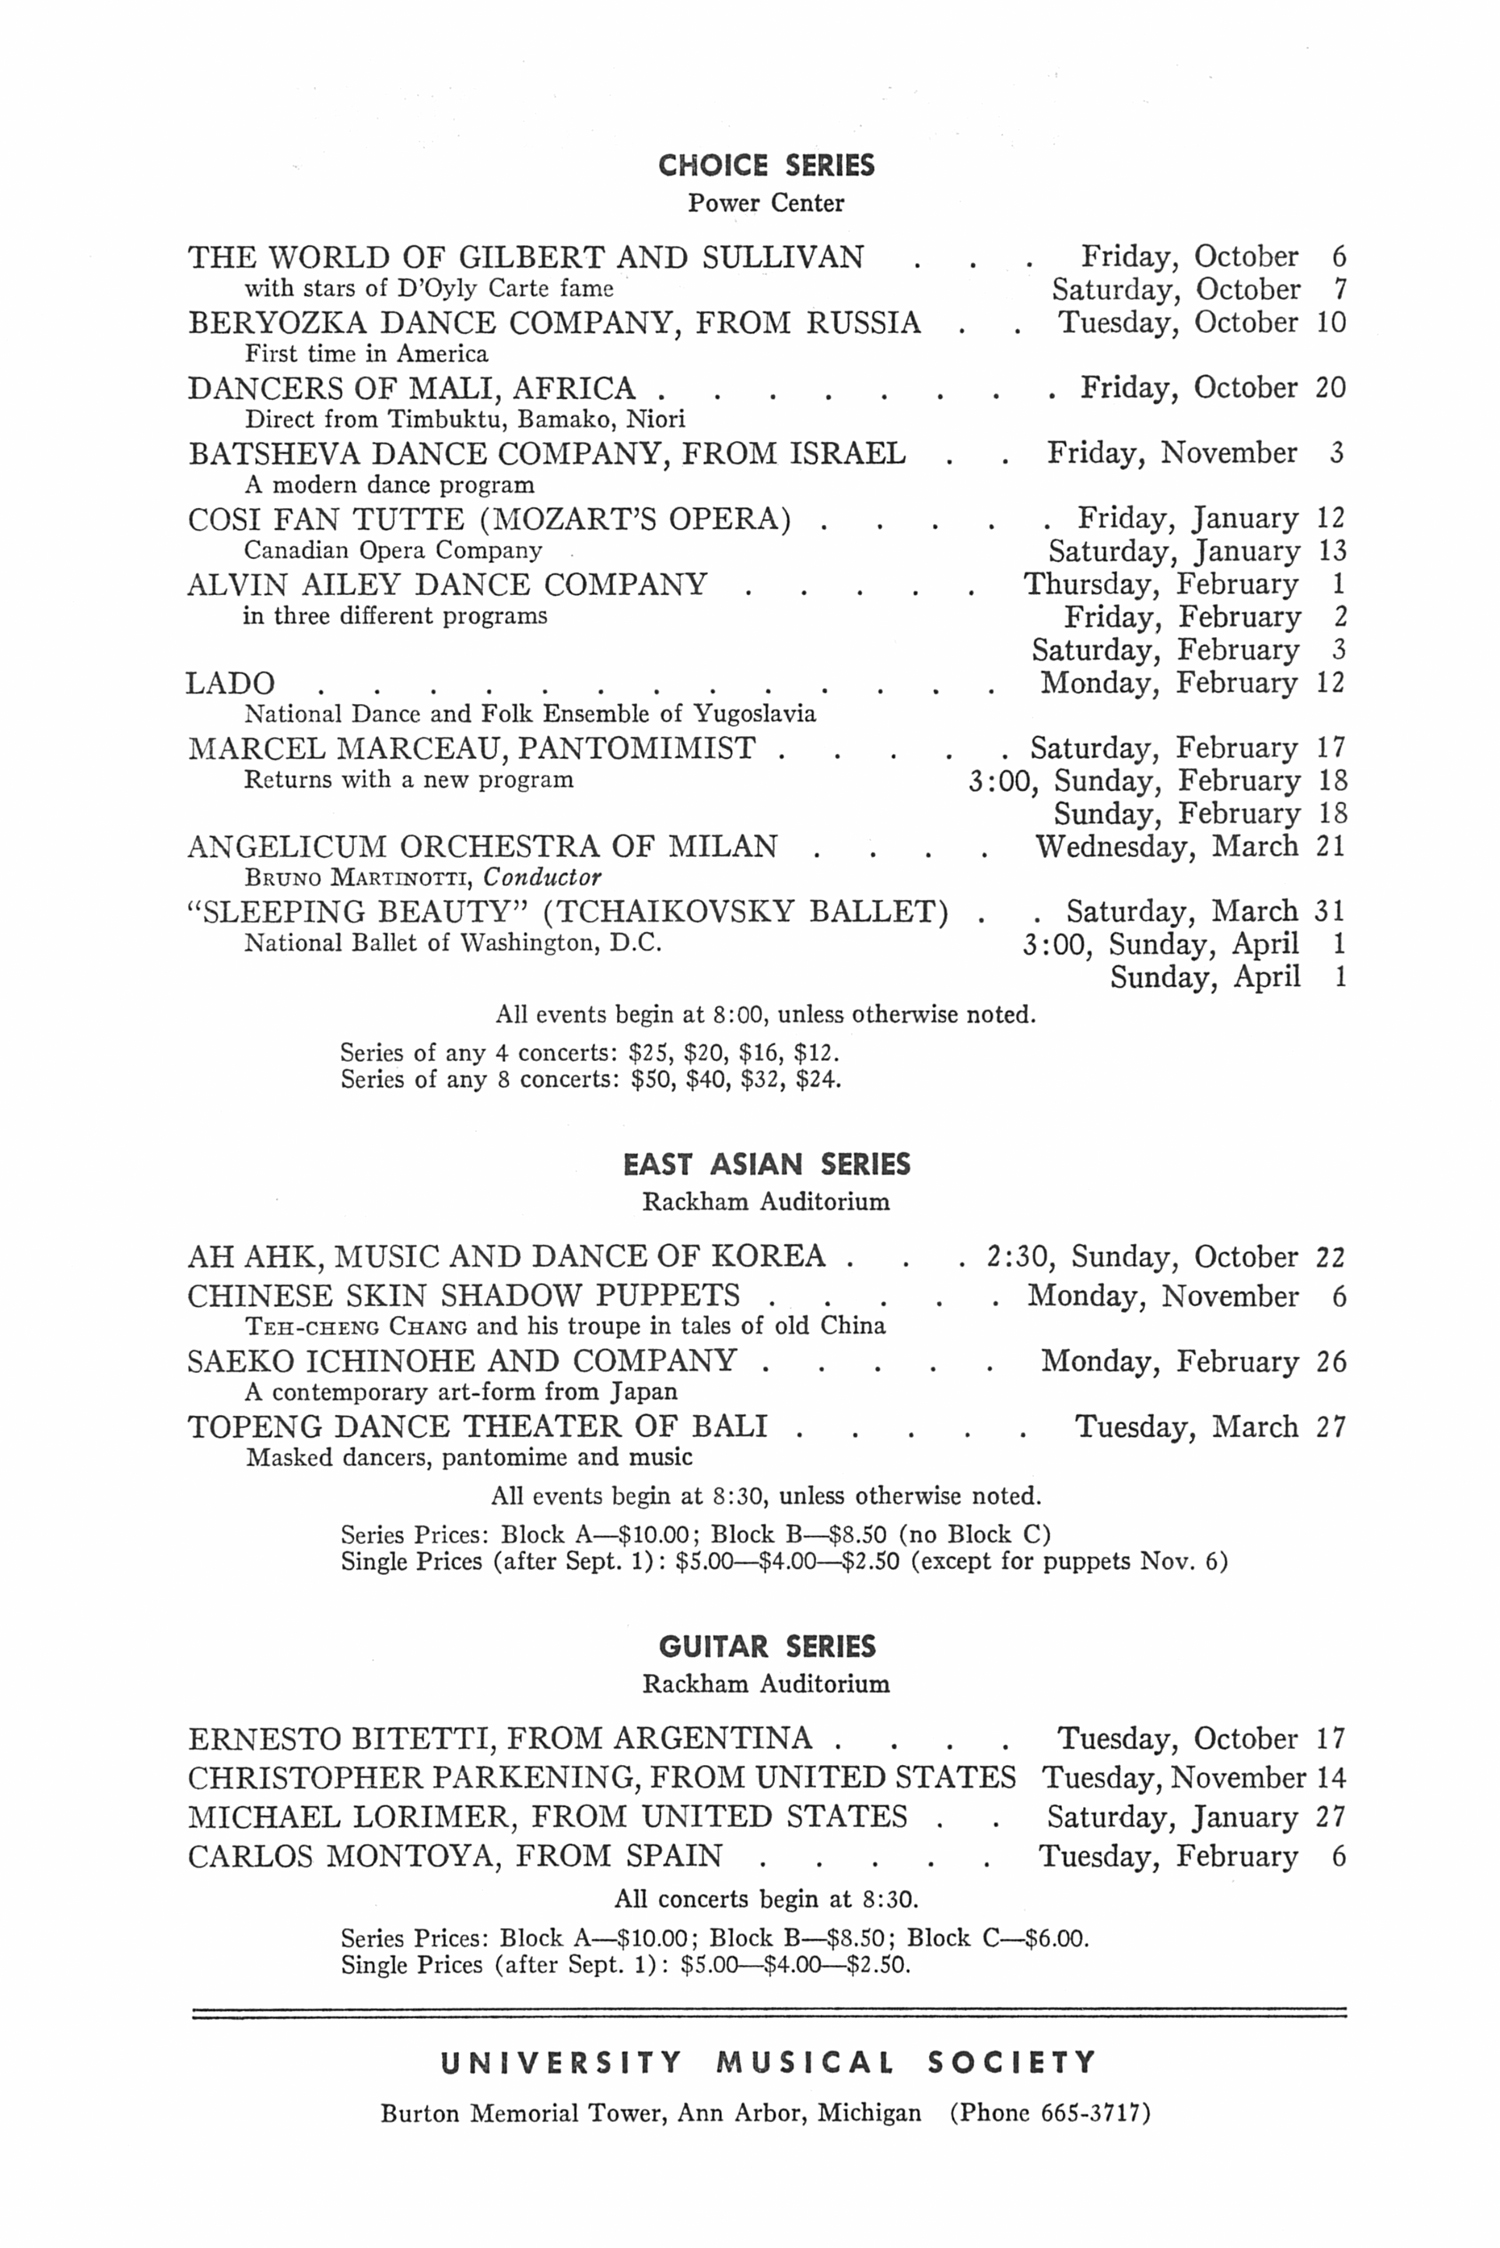 UMS Concert Program, : Choral Union Series --  image